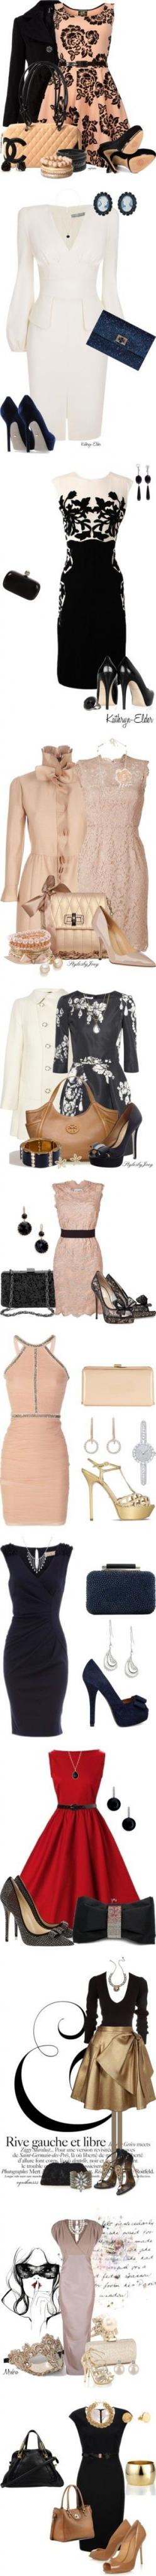 .: Fancy Outfit, Fashion, Outfit Ideas, Style, Classy Cocktail Dress, Party Outfits, Cocktail Party Outfit, Classy Dresses